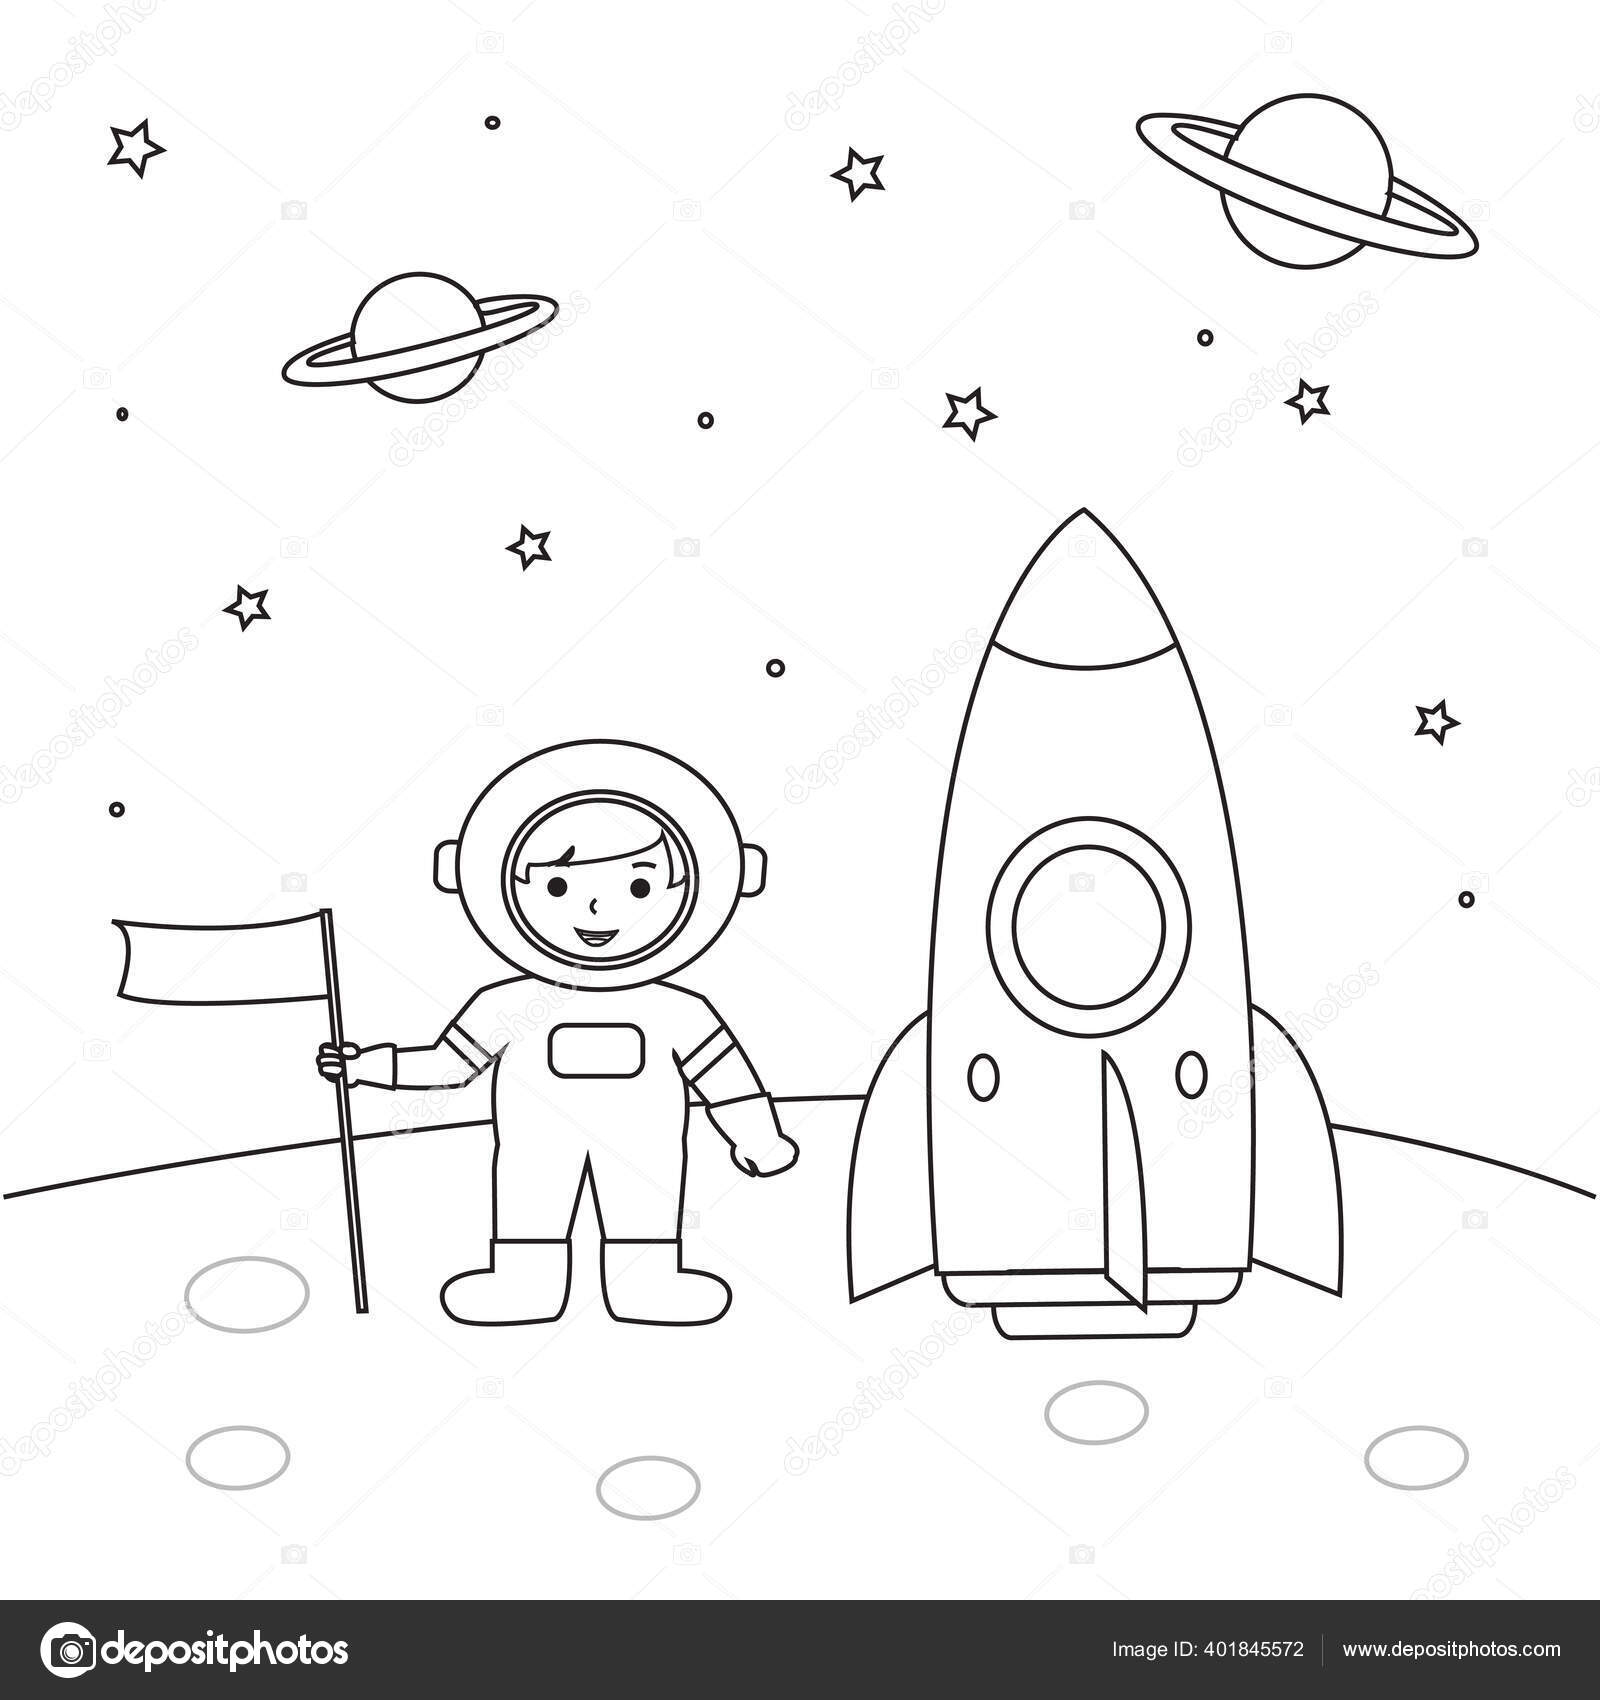 Astronaut Outline Coloring Pages Kids Illustration Vector Vector Image By C Lizstudio Vector Stock 401845572